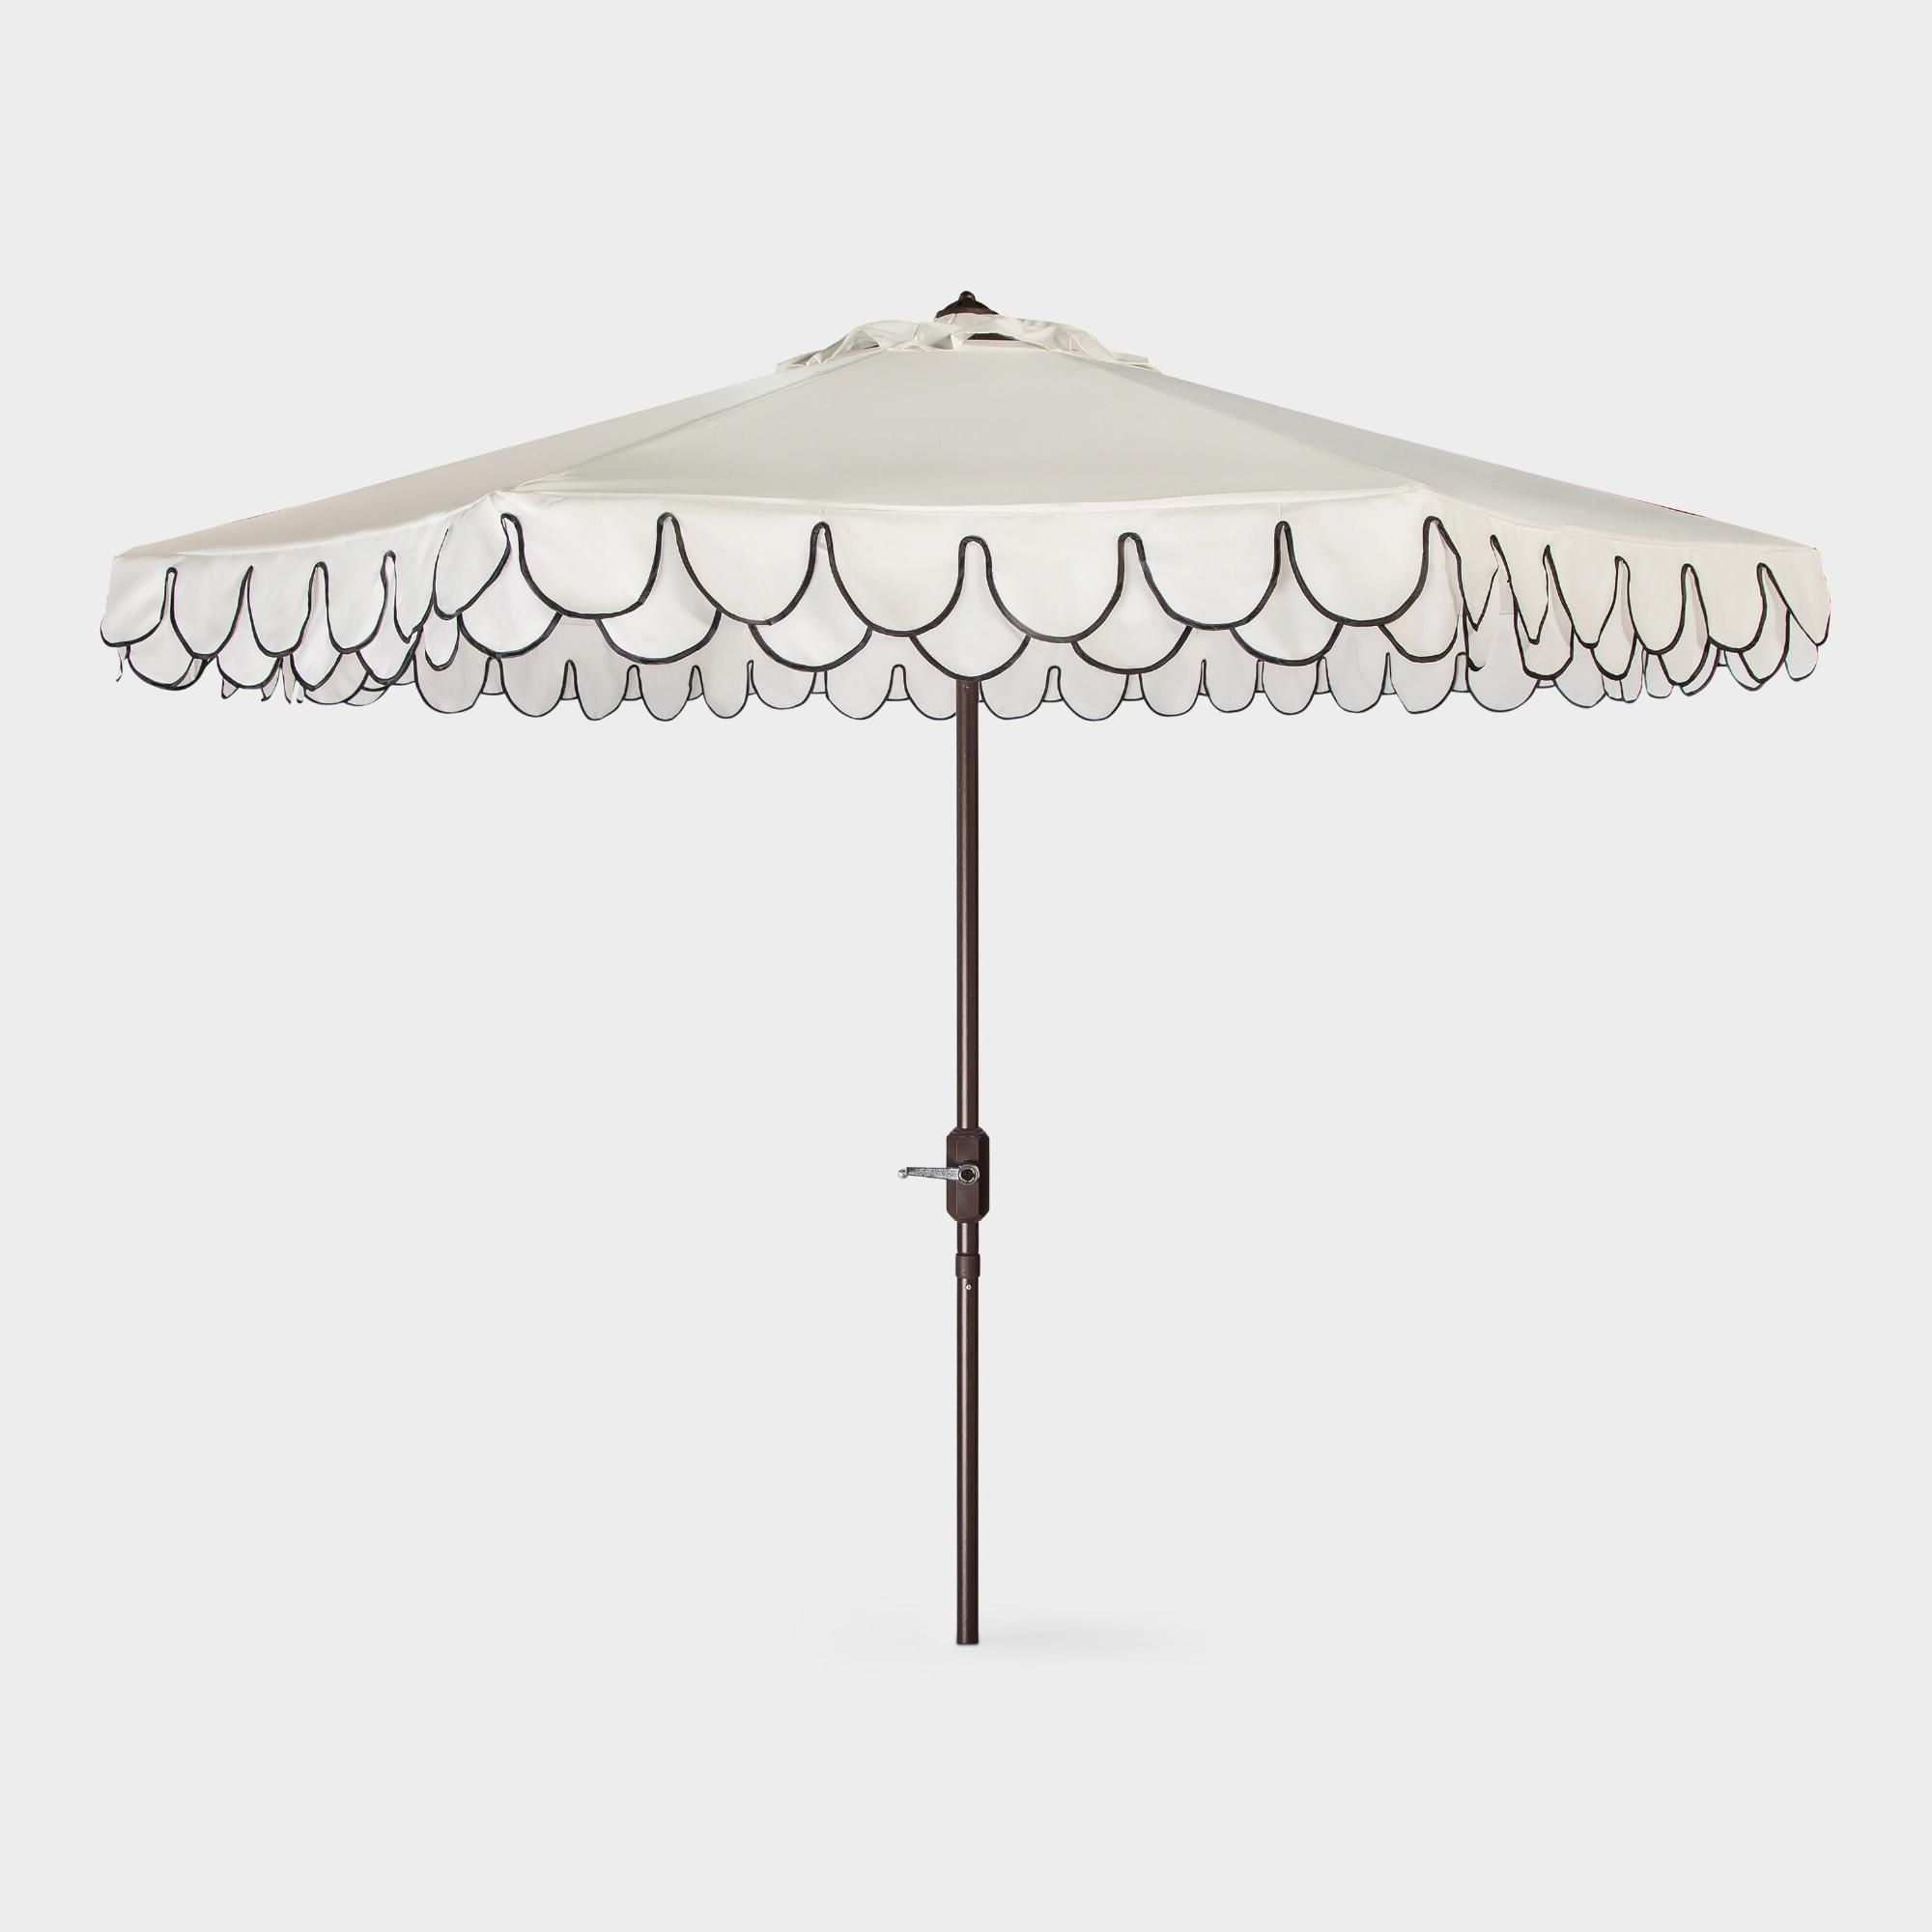 Best And Newest White And Black Double Scallop 9 Ft Tilting Outdoor Patio Umbrella For Lambeth Market Umbrellas (Gallery 5 of 20)